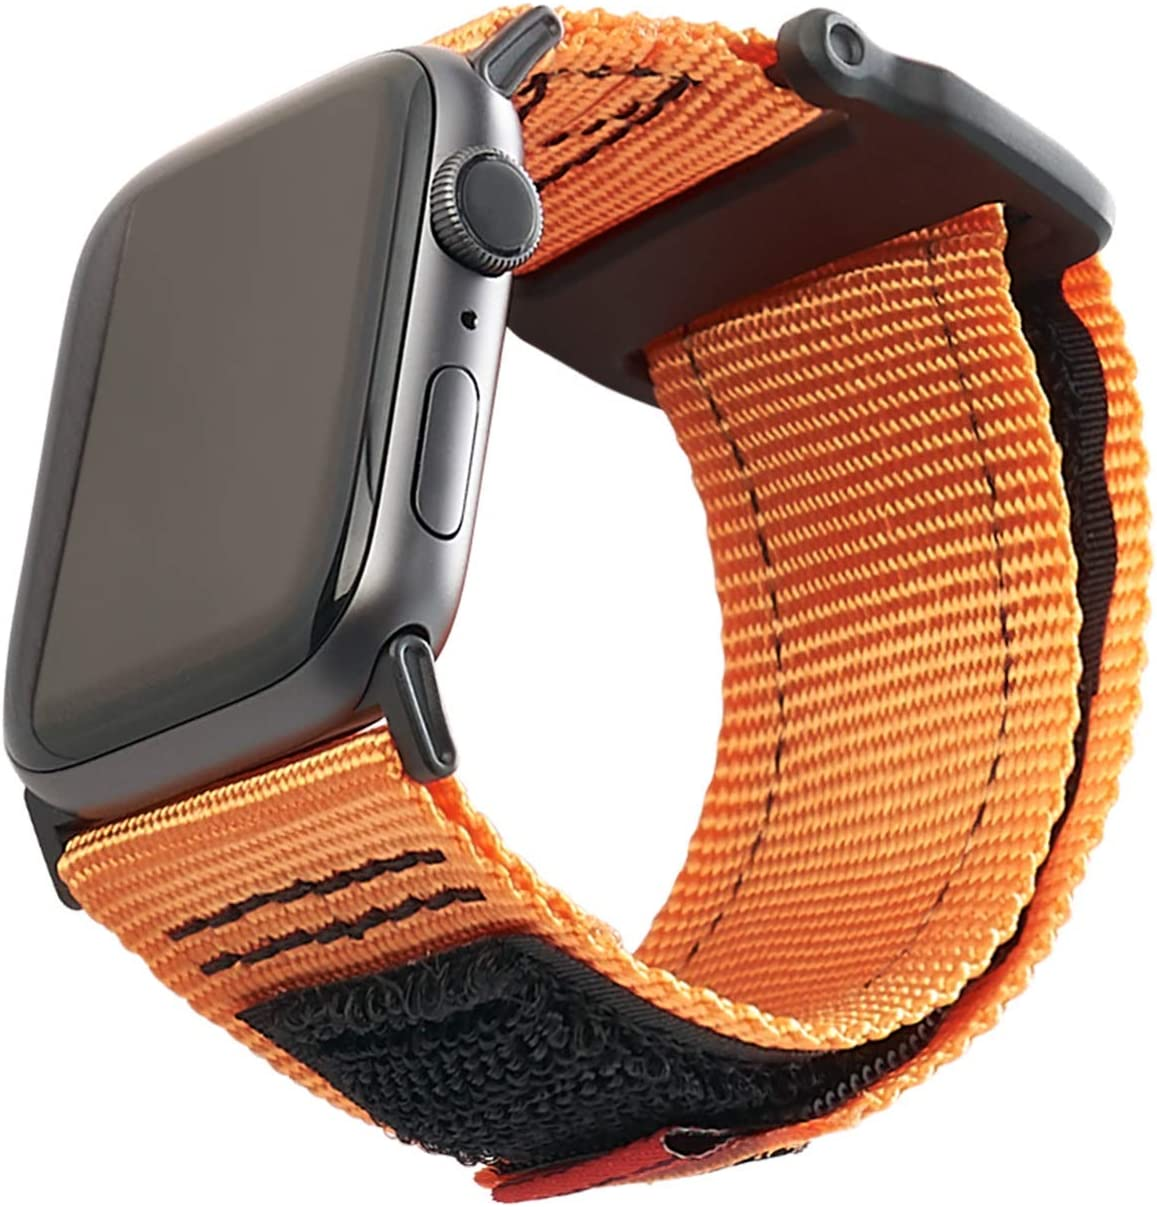 Urban Armor Gear Active Correa para Apple Watch (42mm) y Apple Watch (44mm) (Series 5, Series 4, Series 3, Series 2, Series 1, Correa reemplazable) - Naranja: Amazon.es: Electrónica